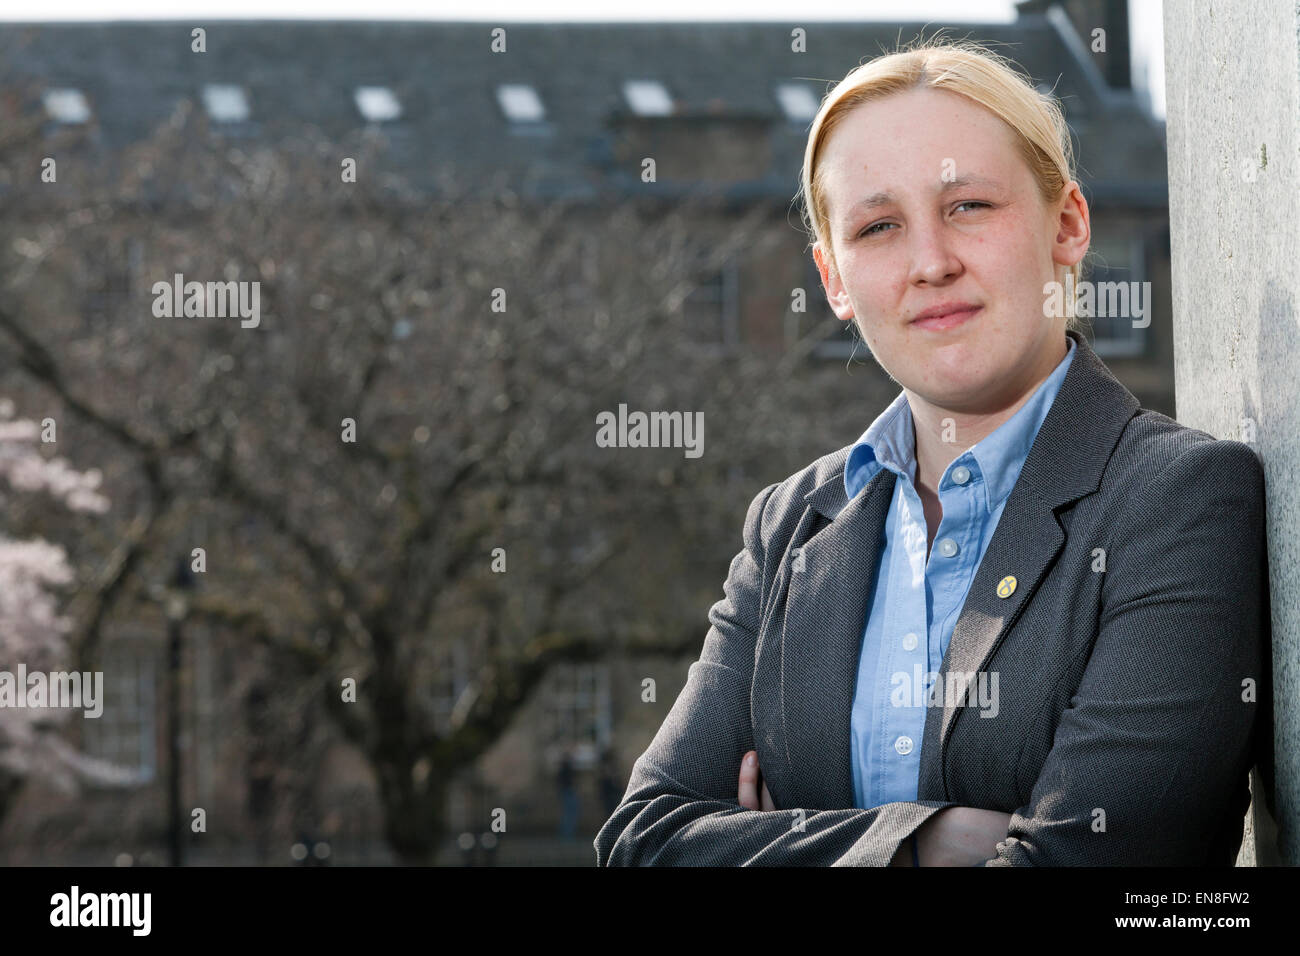 Mhairi Black, MP, the 20 year-old SNP candidate for Paisley and Renfrewshire South who beat Labour's Douglas - Stock Image